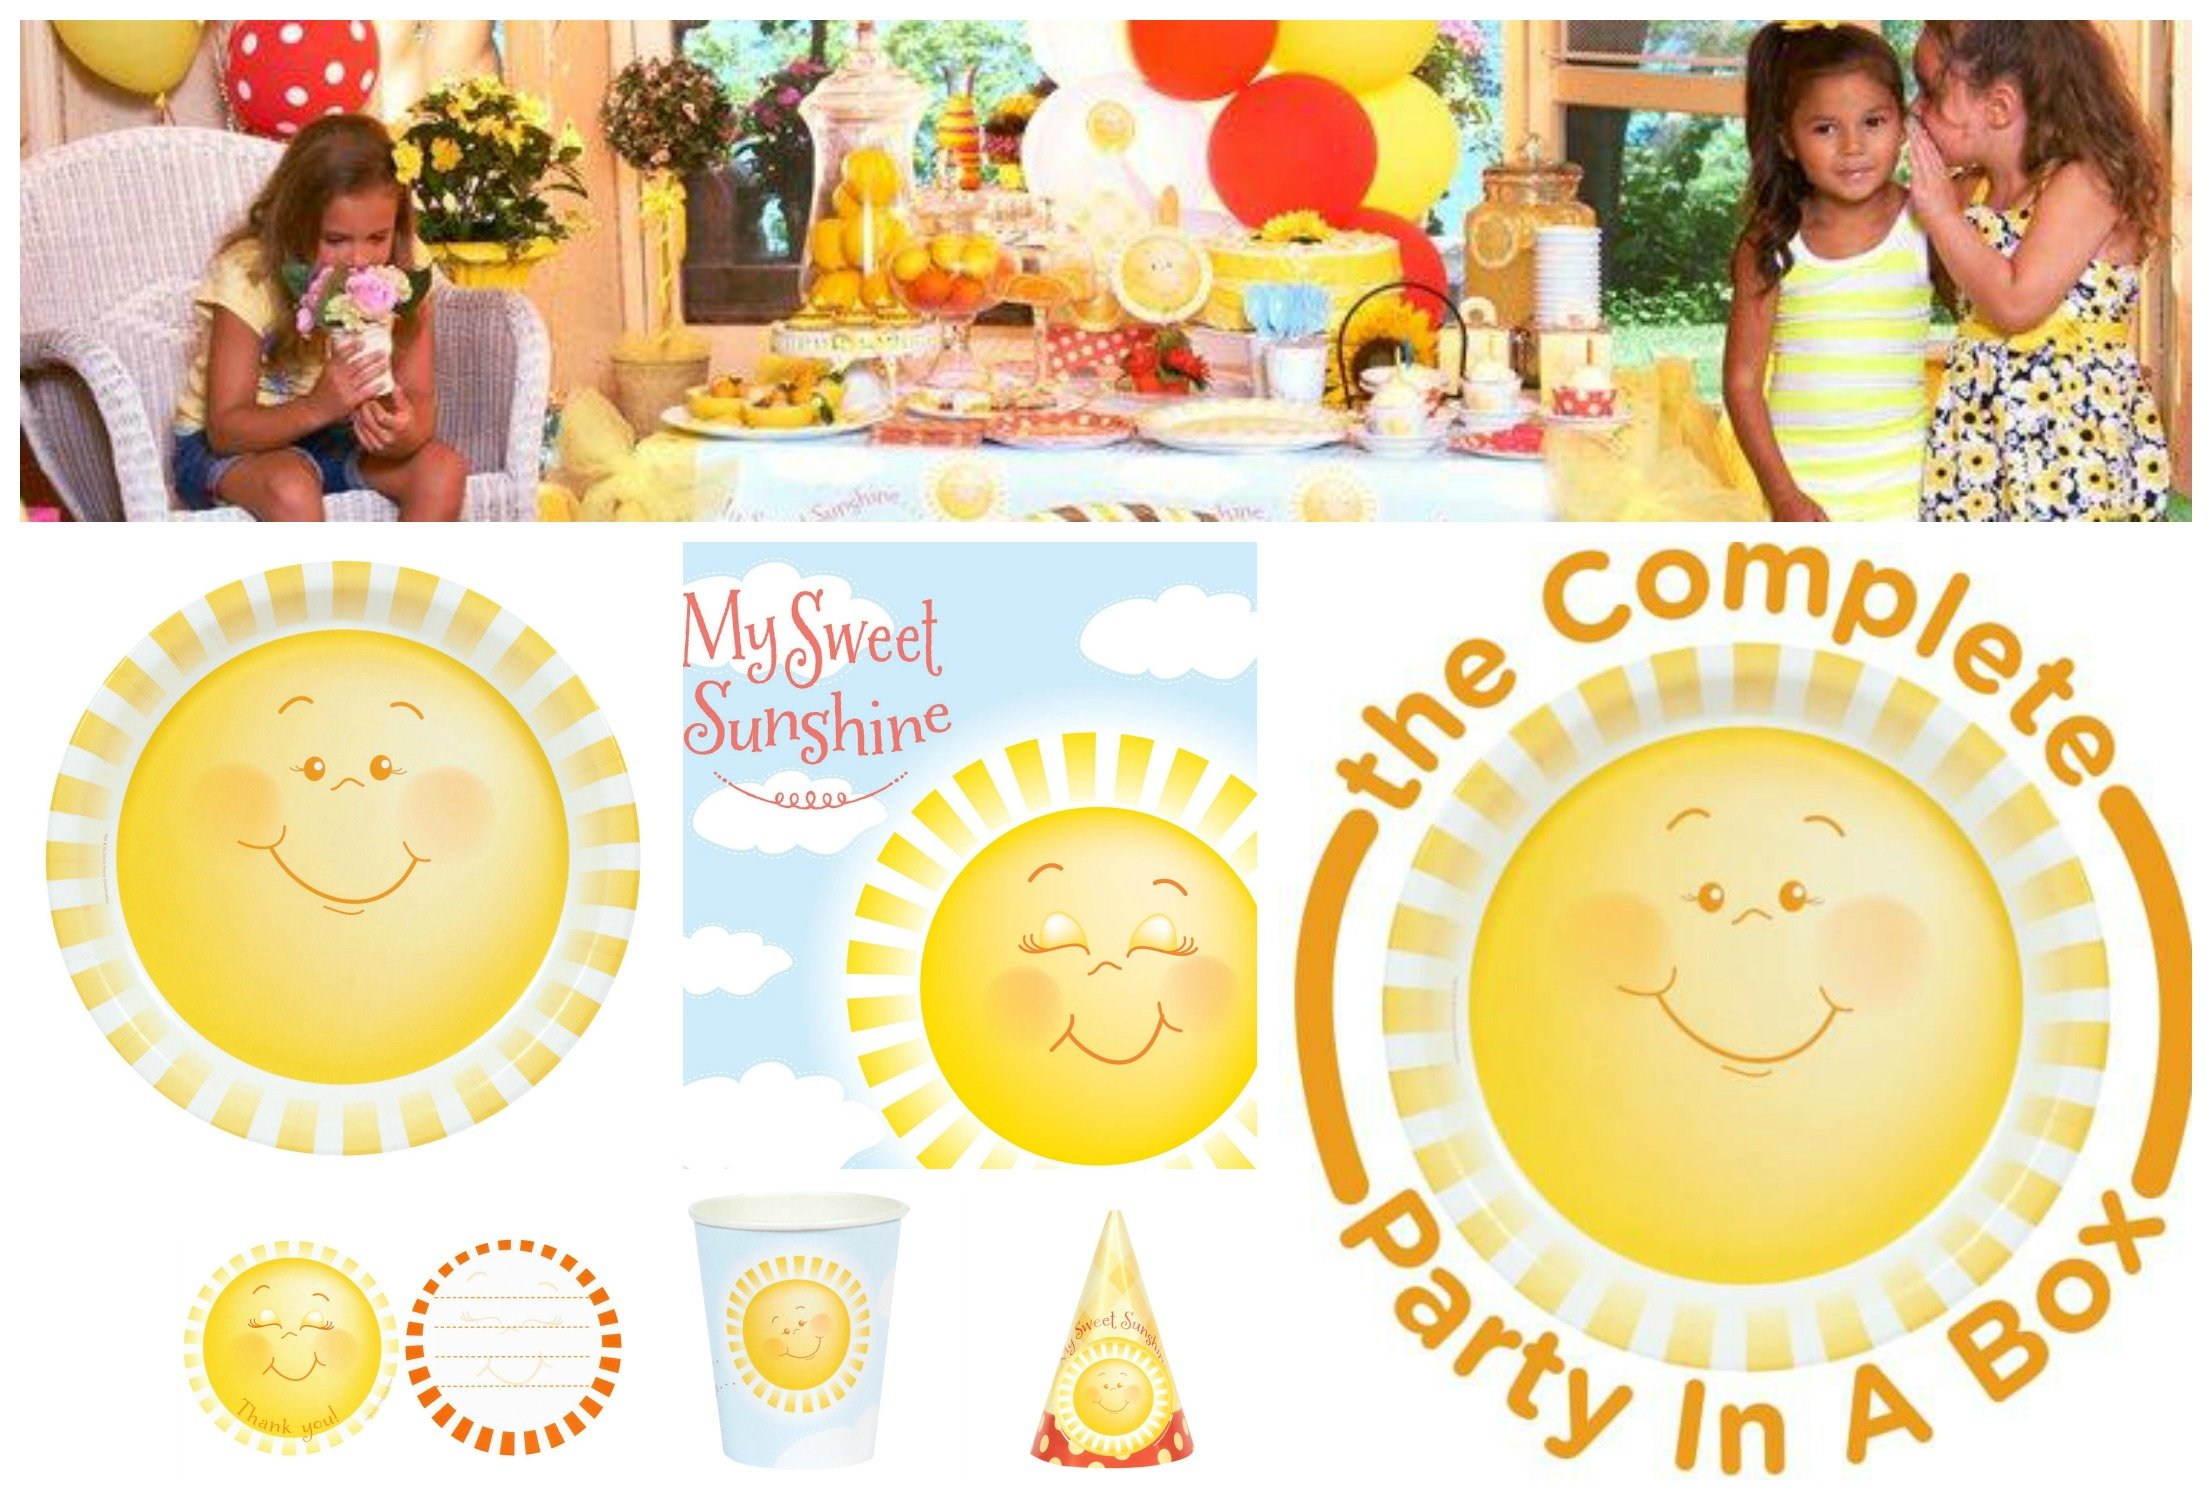 My Sweet Sunshine Smiley Face Party in a Box, Smiley Face. Happy Face Party Supplies